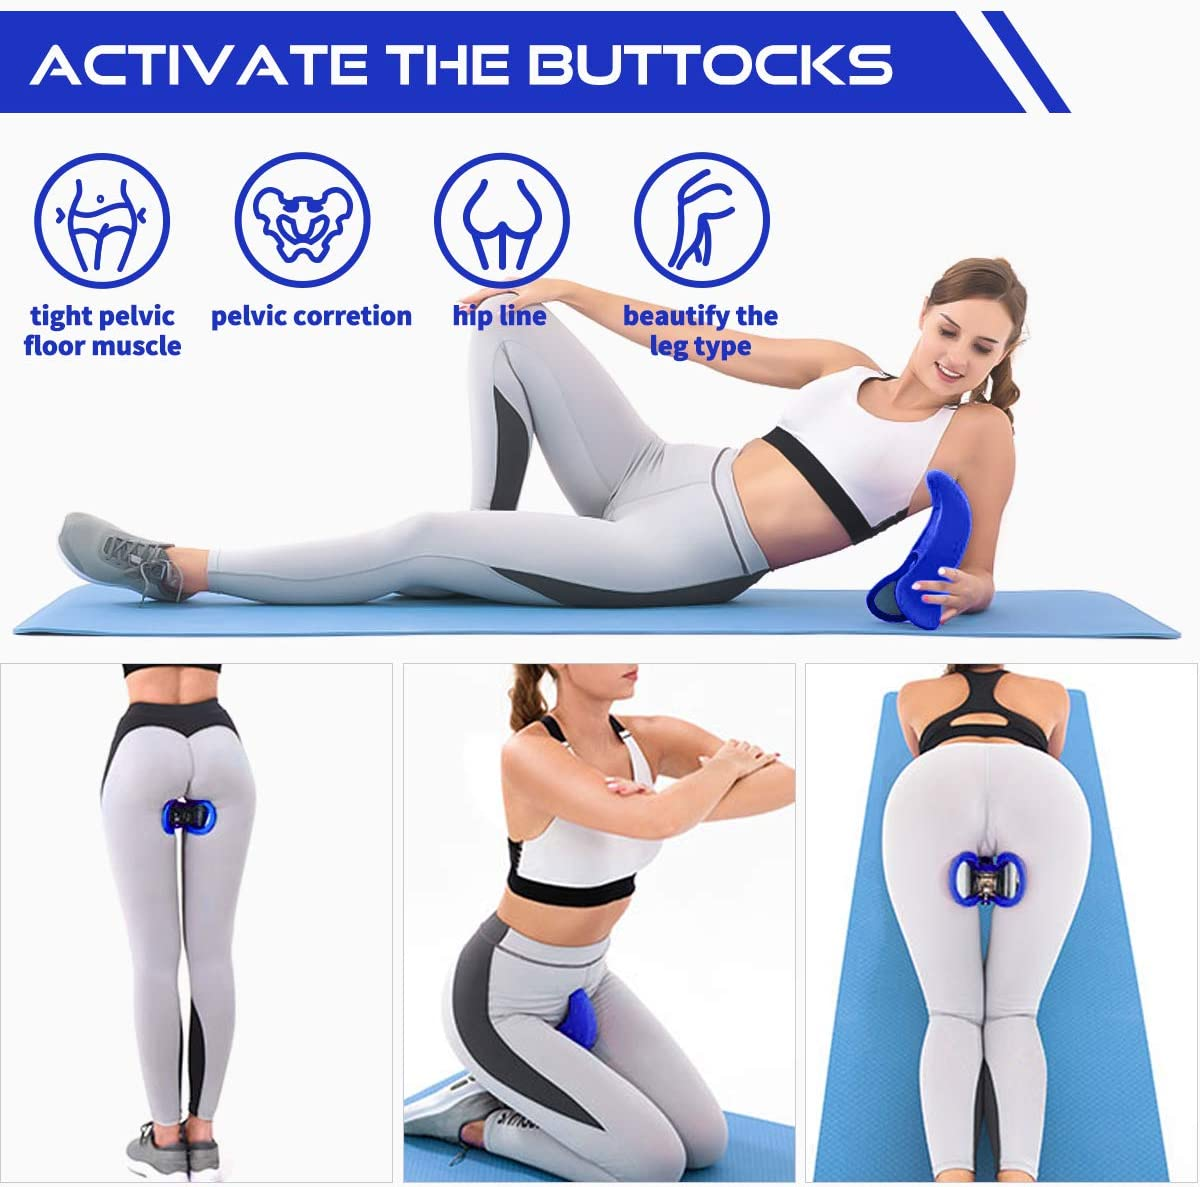 Butt Workout Tool Kegel Pelvic Floor Strengthening Device and Inner Thigh Exerciser All in One 4D Hip Trainer Accelerates Postpartum Rehabilitation and Improves Bladder Control